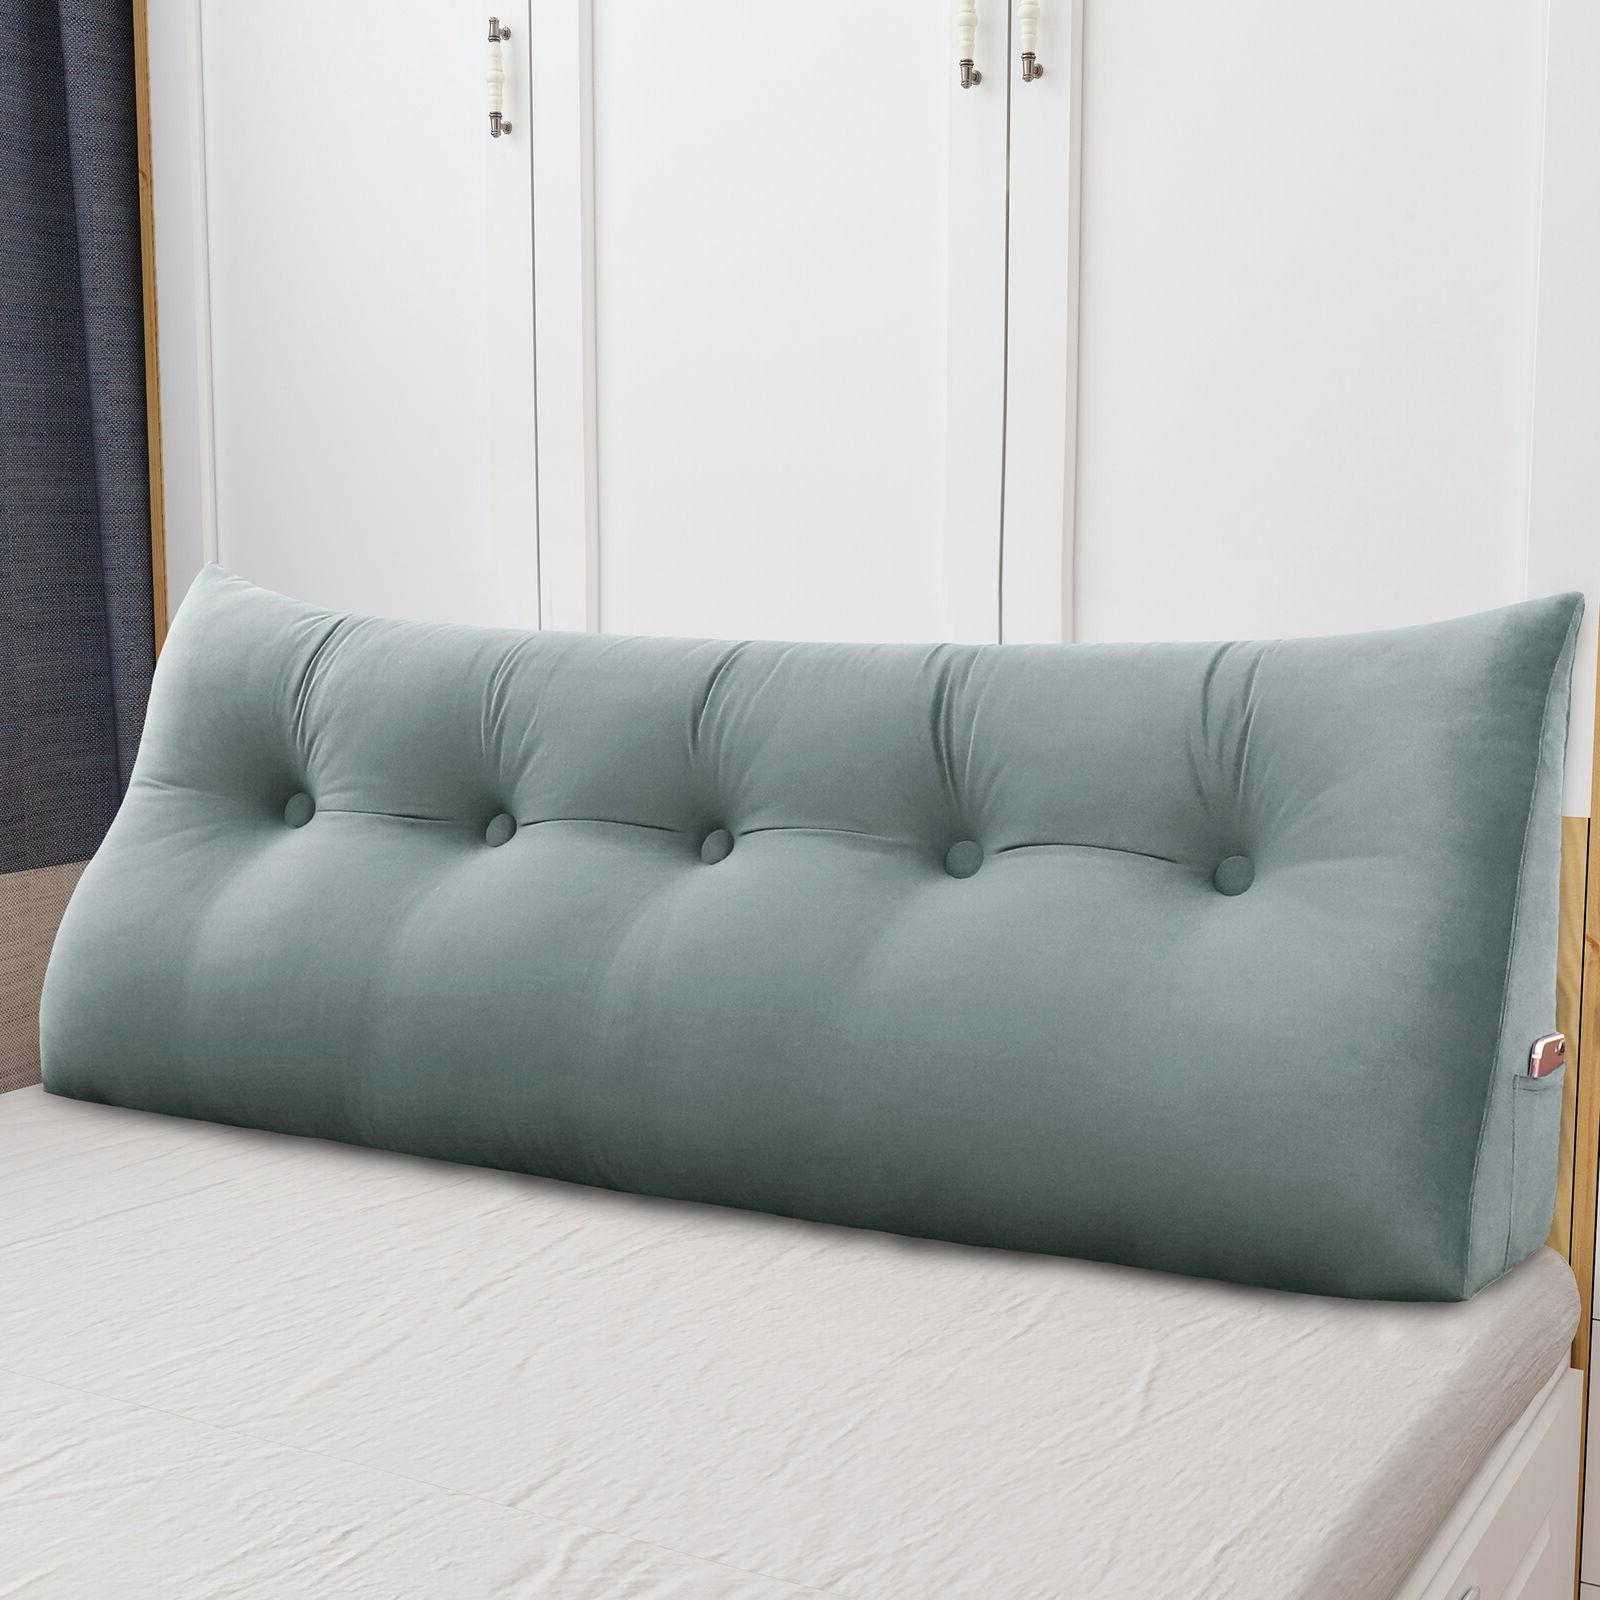 daybed bolster pillow headboard